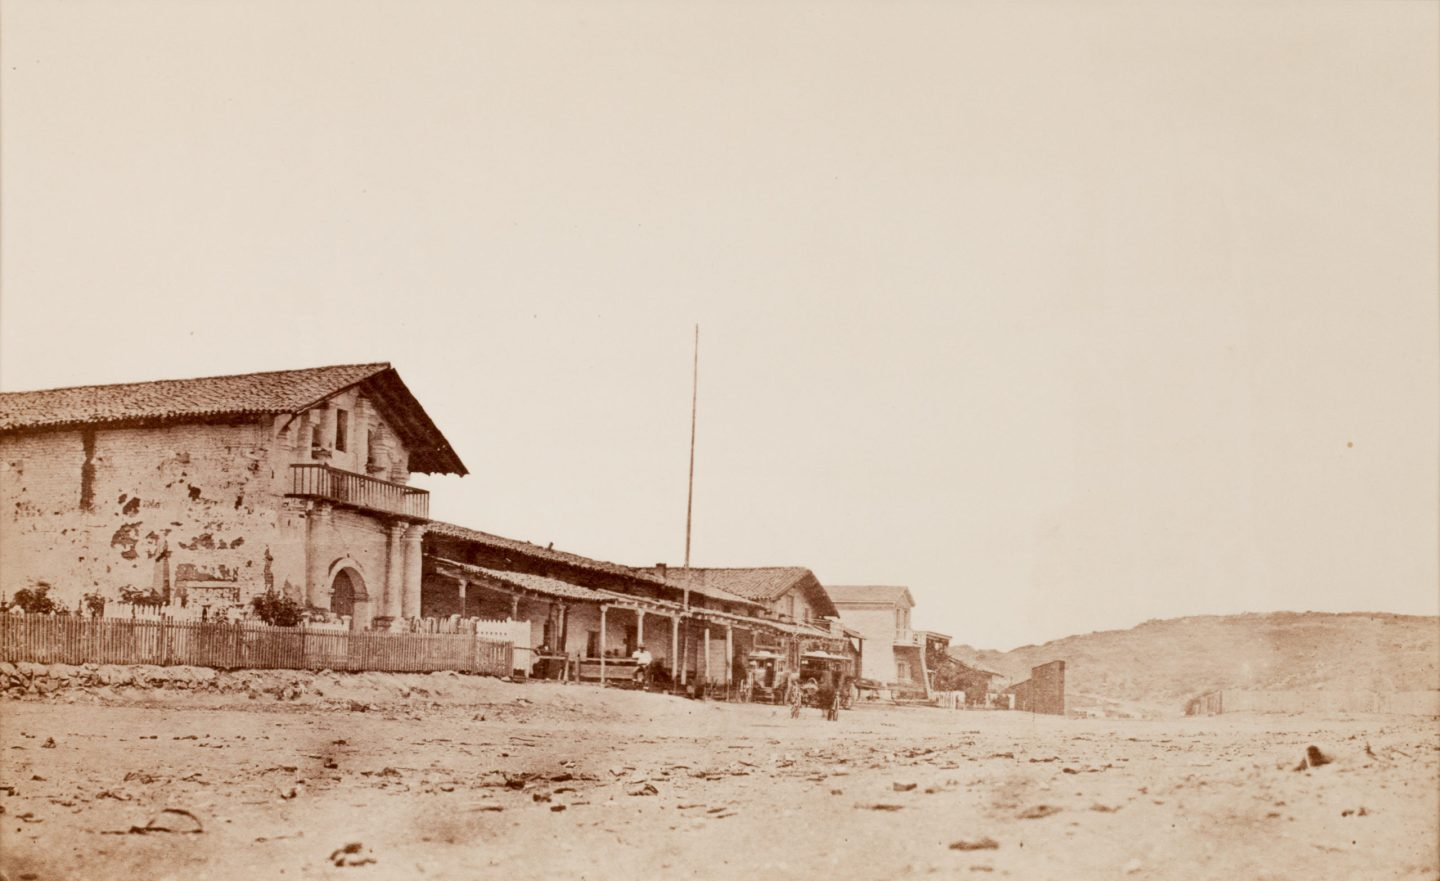 19th century photograph of a cluster of buildings receding diagonally towards a hill in the background